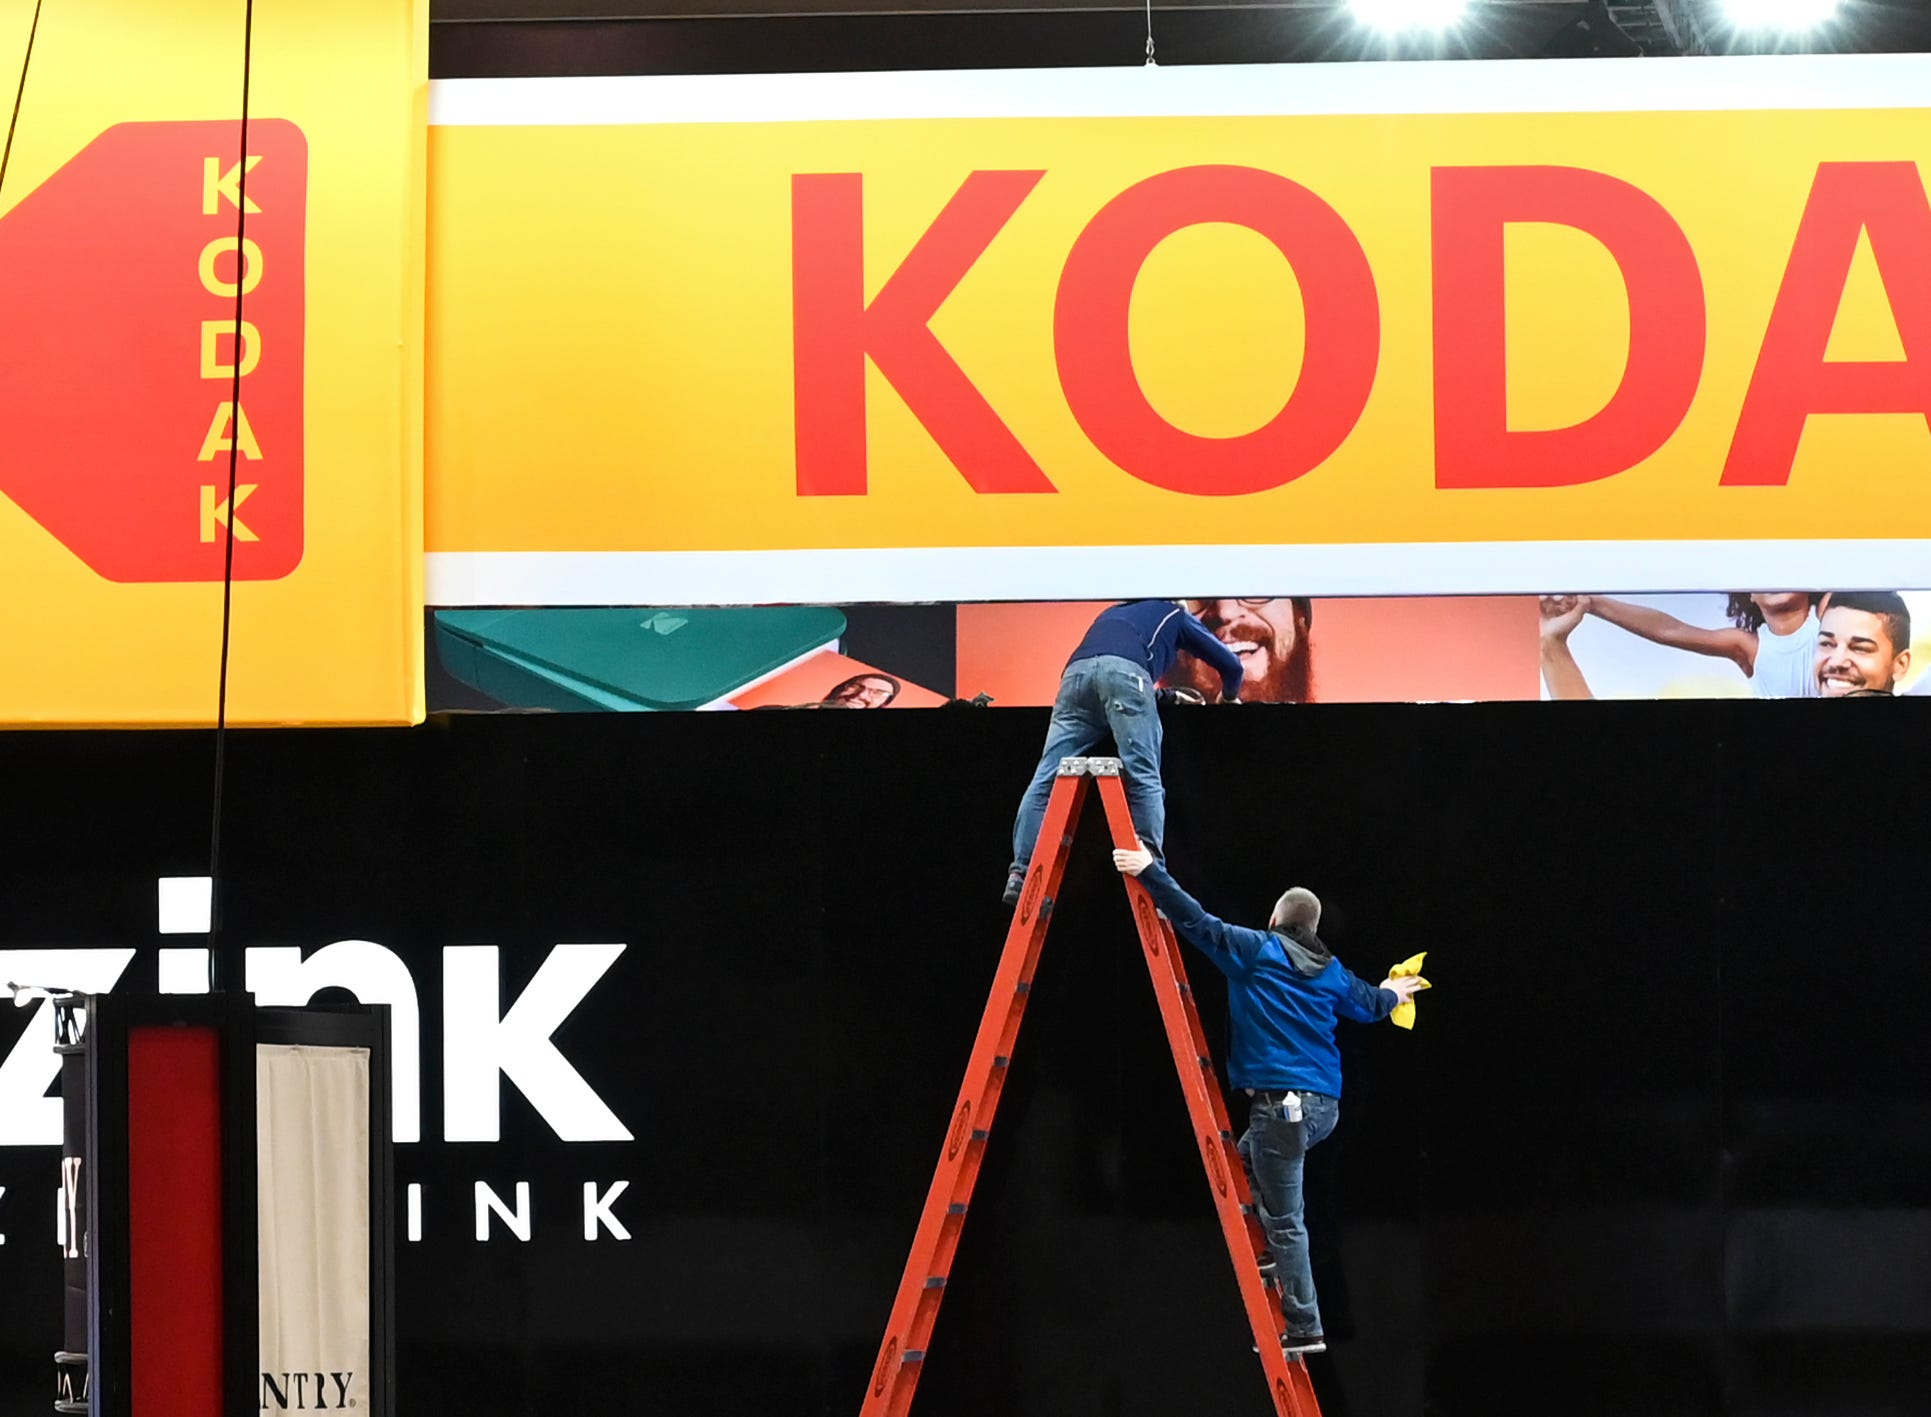 Workers clean up signage at the Kodak display in the Central Hall of the Las Vegas Convention Center.